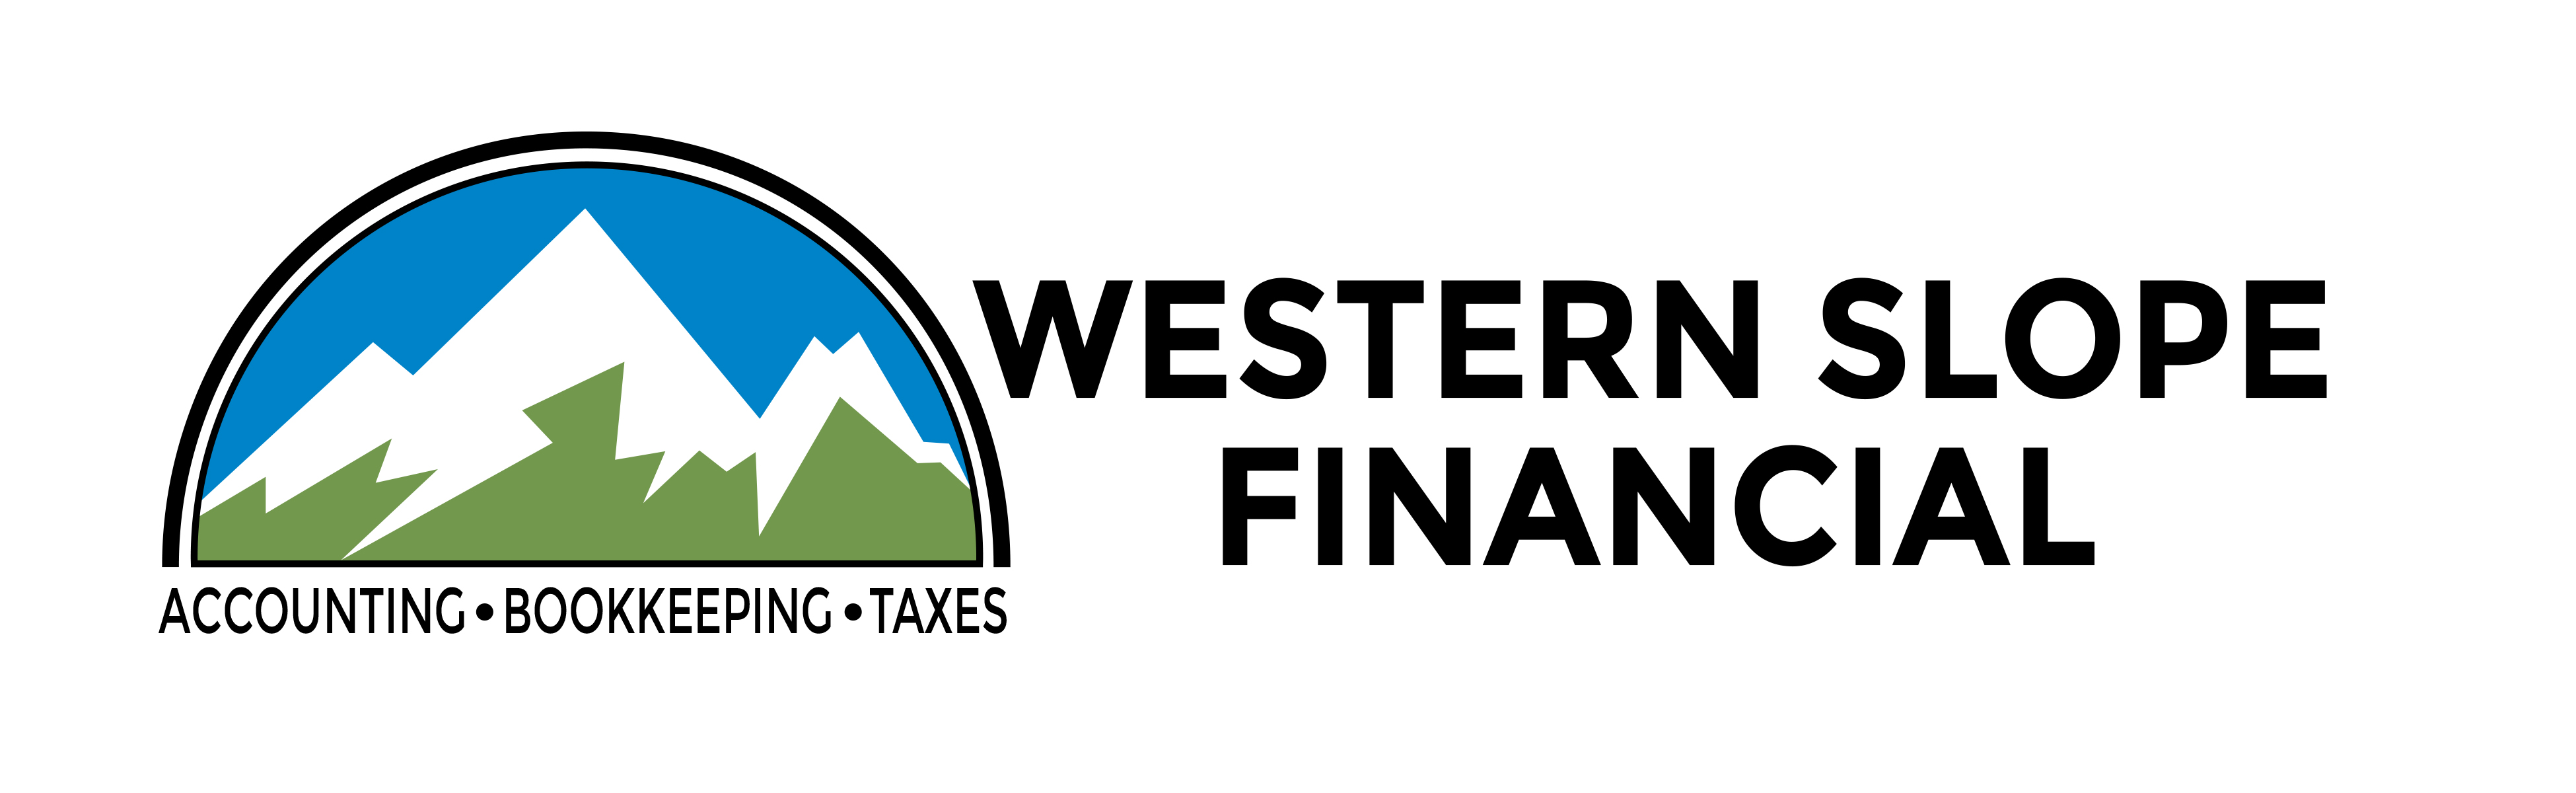 Western Slope Financial